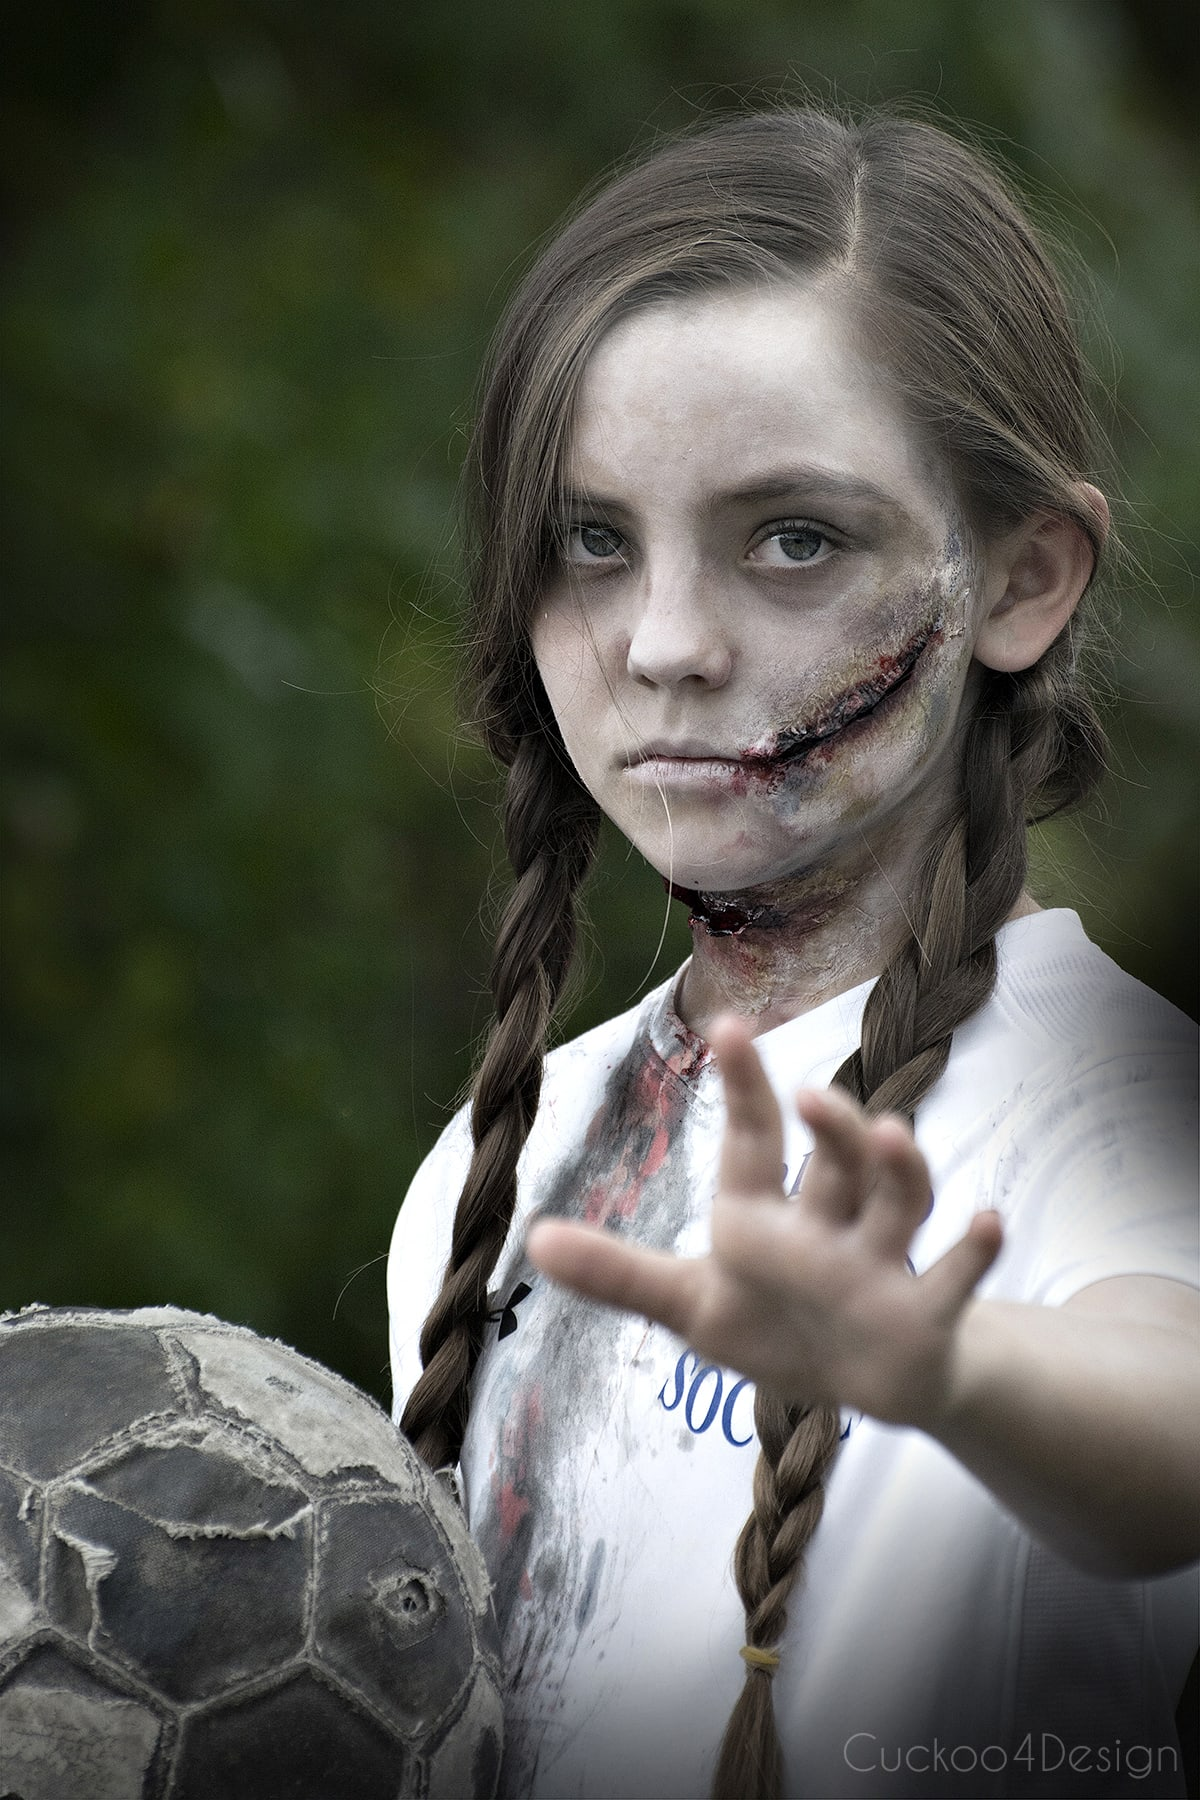 easy tutorial on how to make creepy zombie makeup with some easy to follow steps. If you can decoupage a craft project than you can make zombie makeup too   kids Halloween makeup   affordable DIY costume   soccer zombie